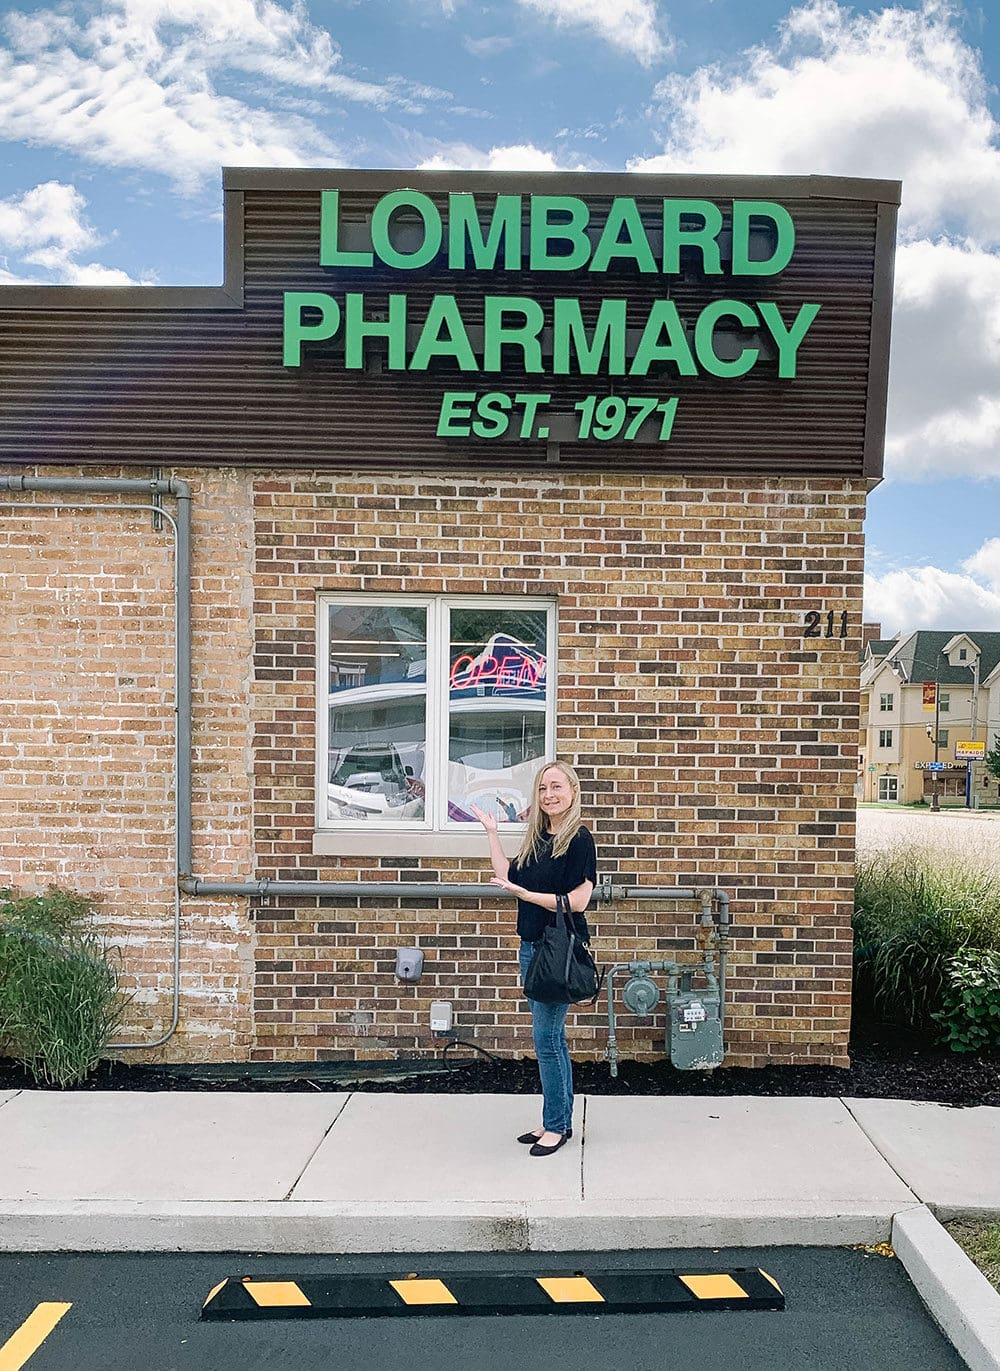 Standing in front of the Lombard Pharmacy.